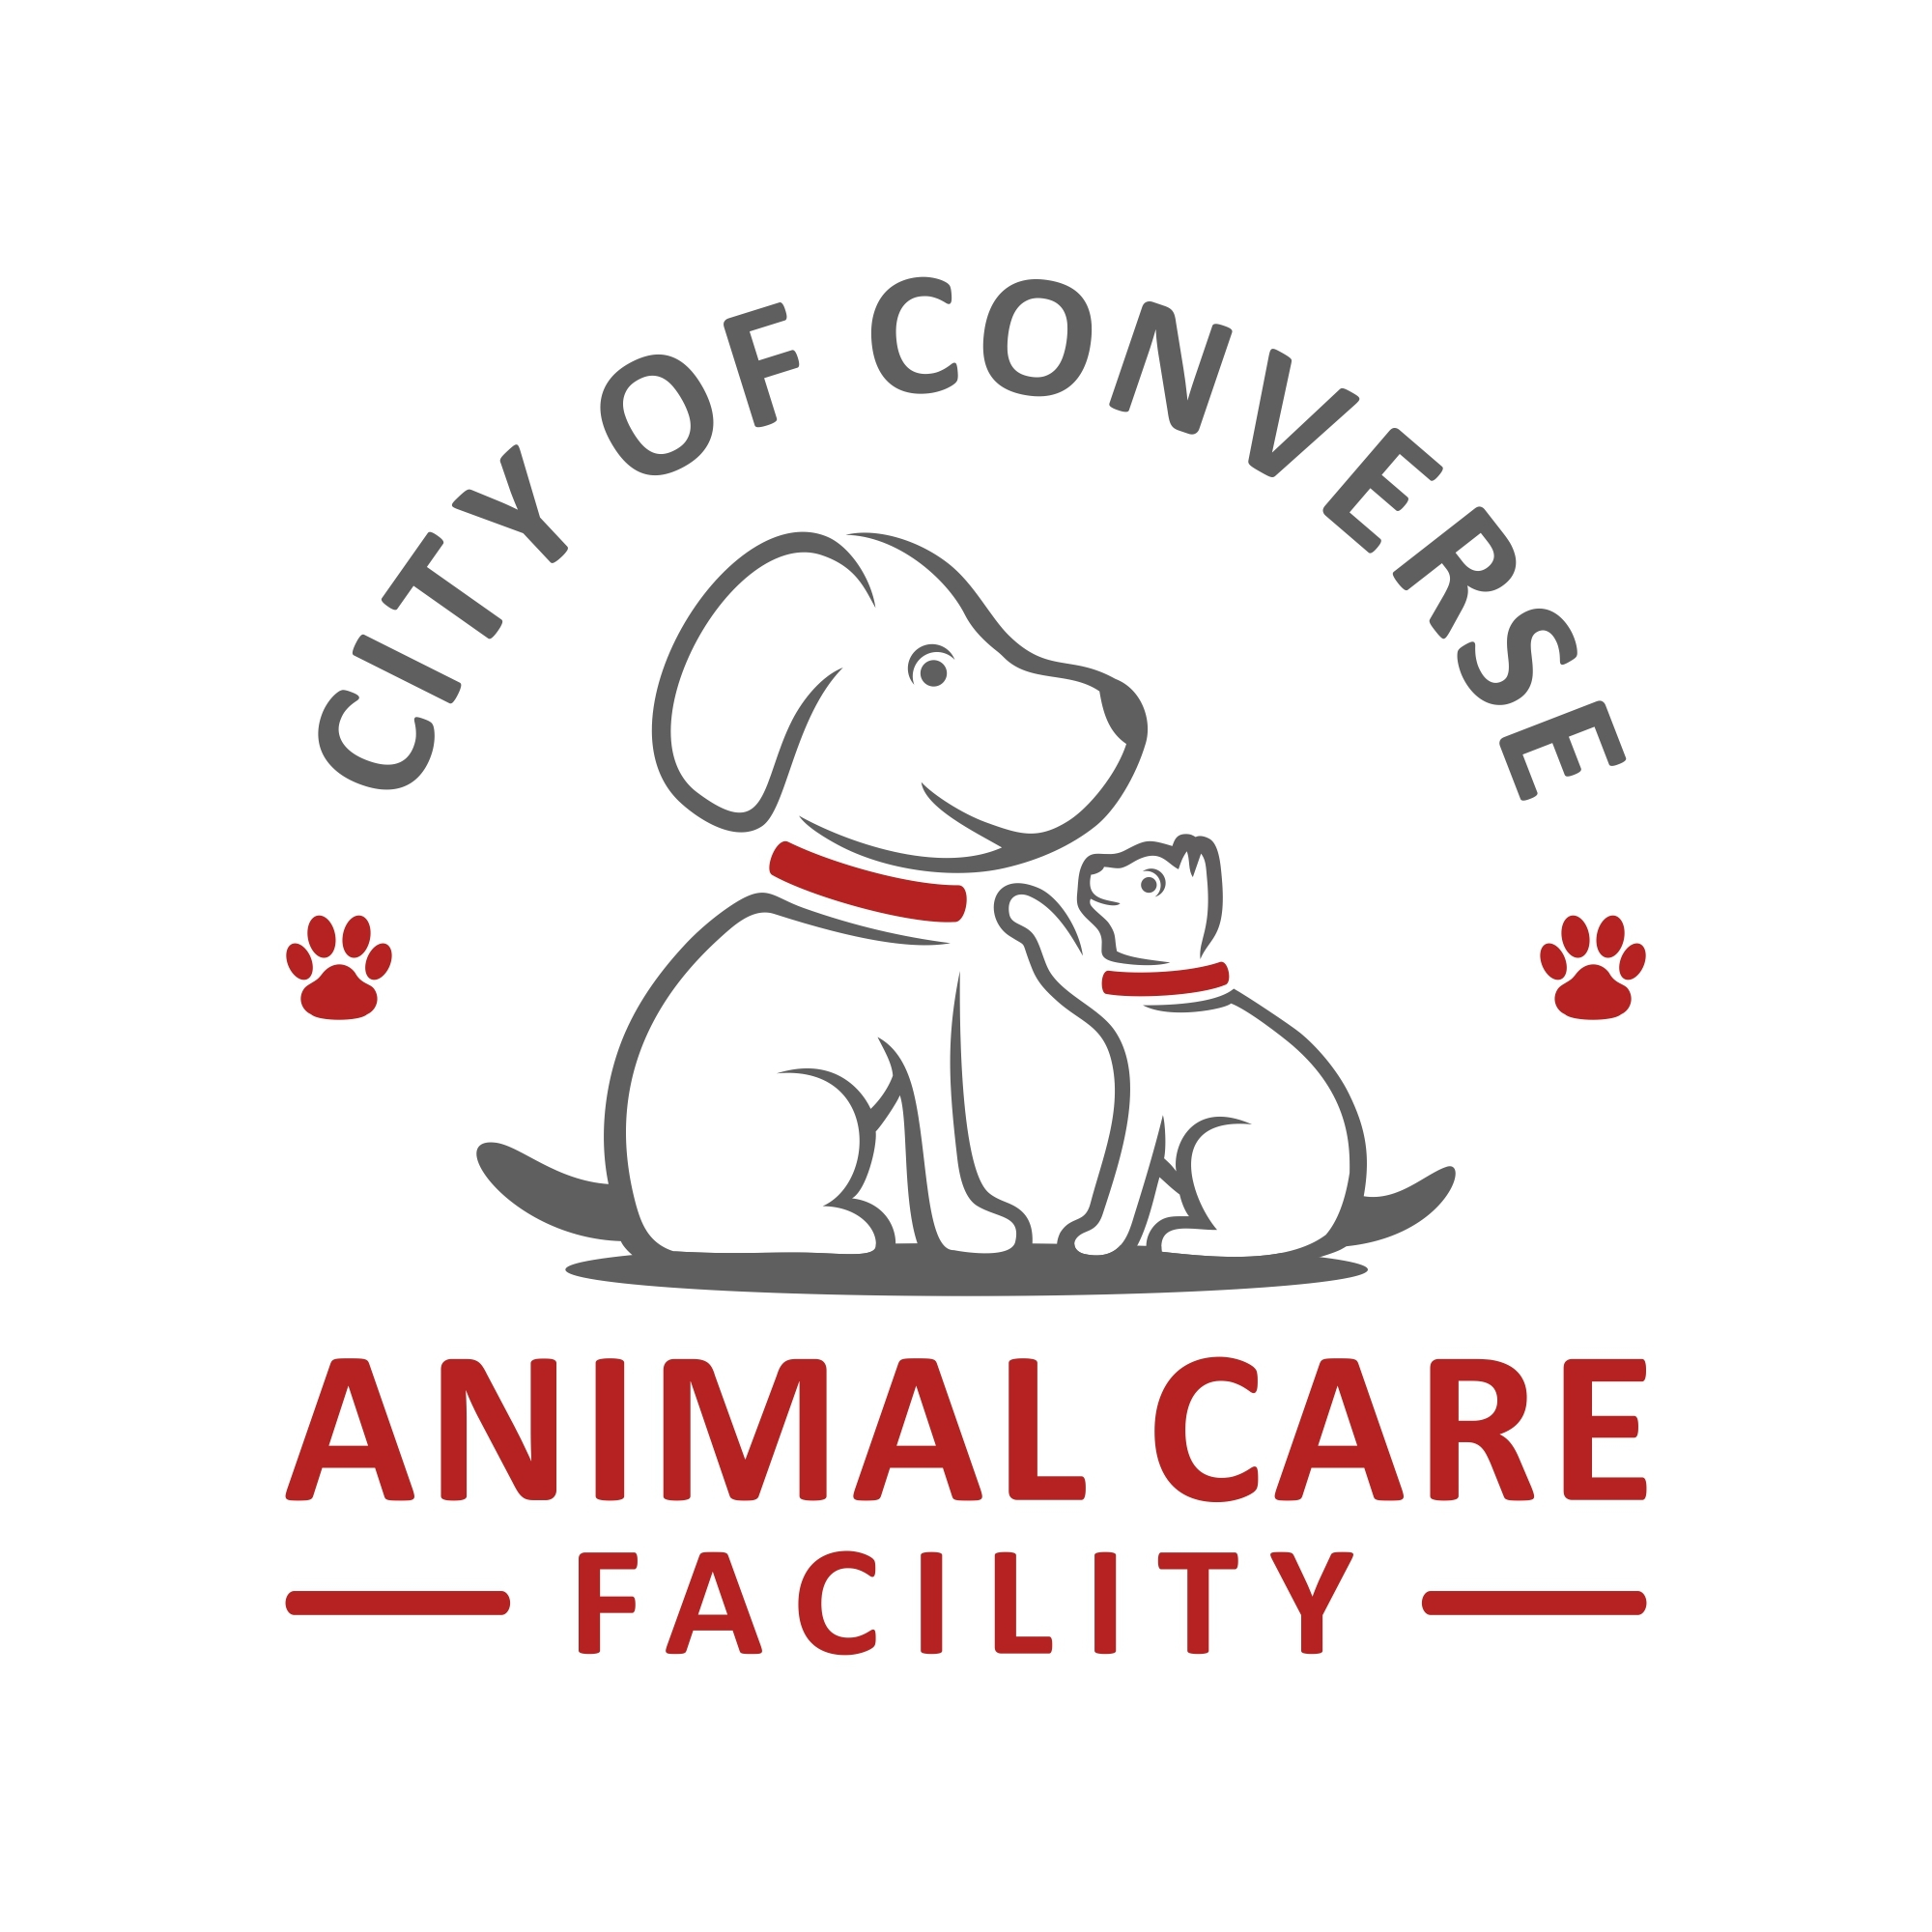 City of Converse Animal Care